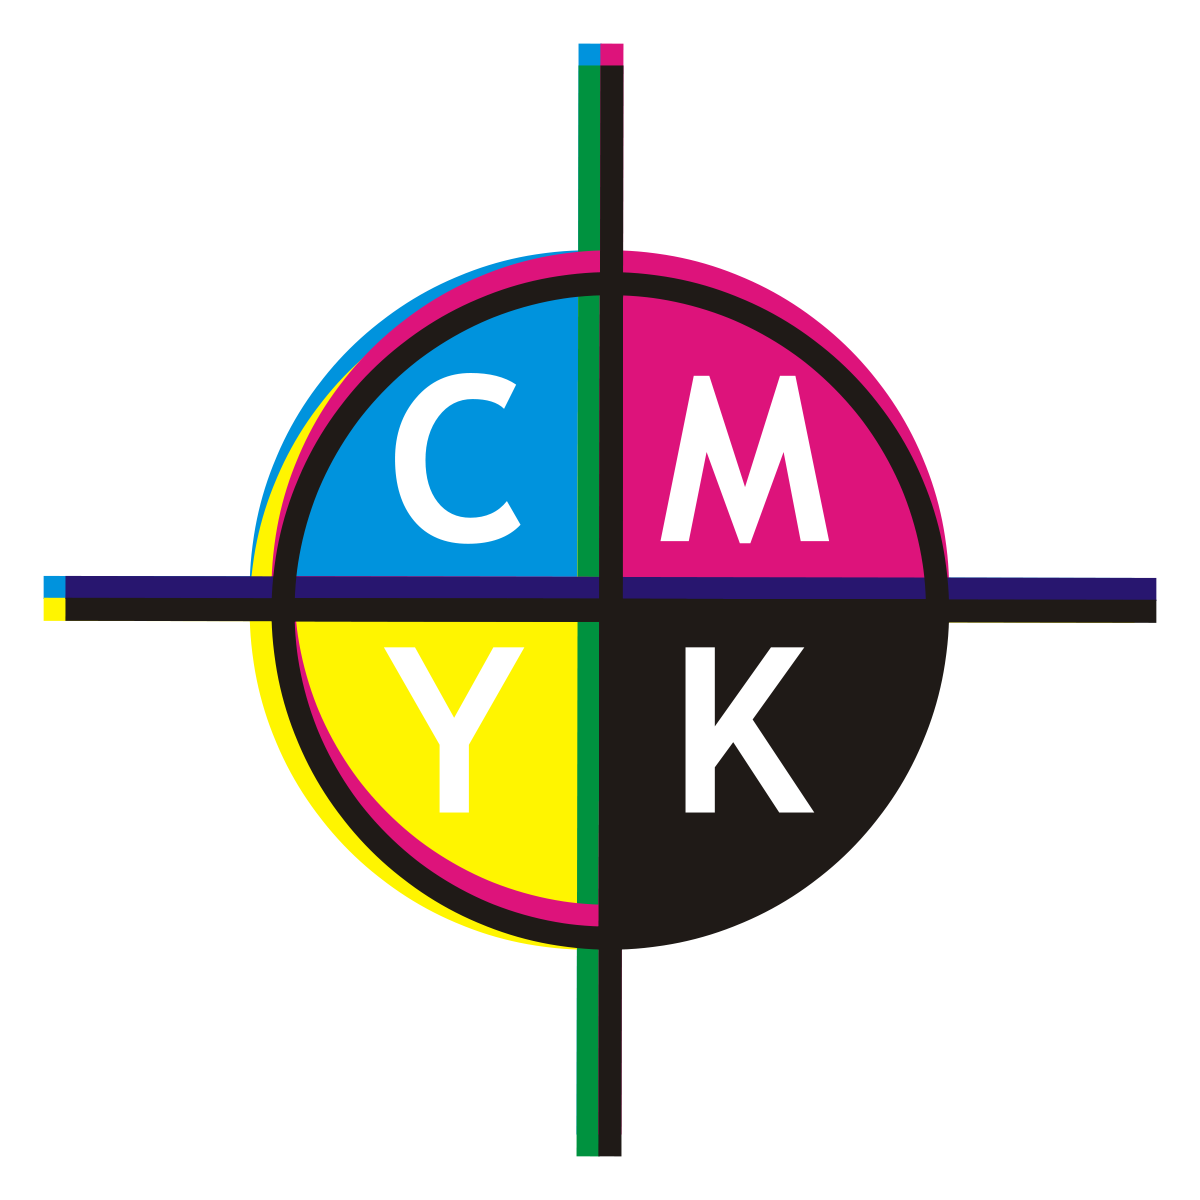 Printing vector color cmyk. Registration wikipedia